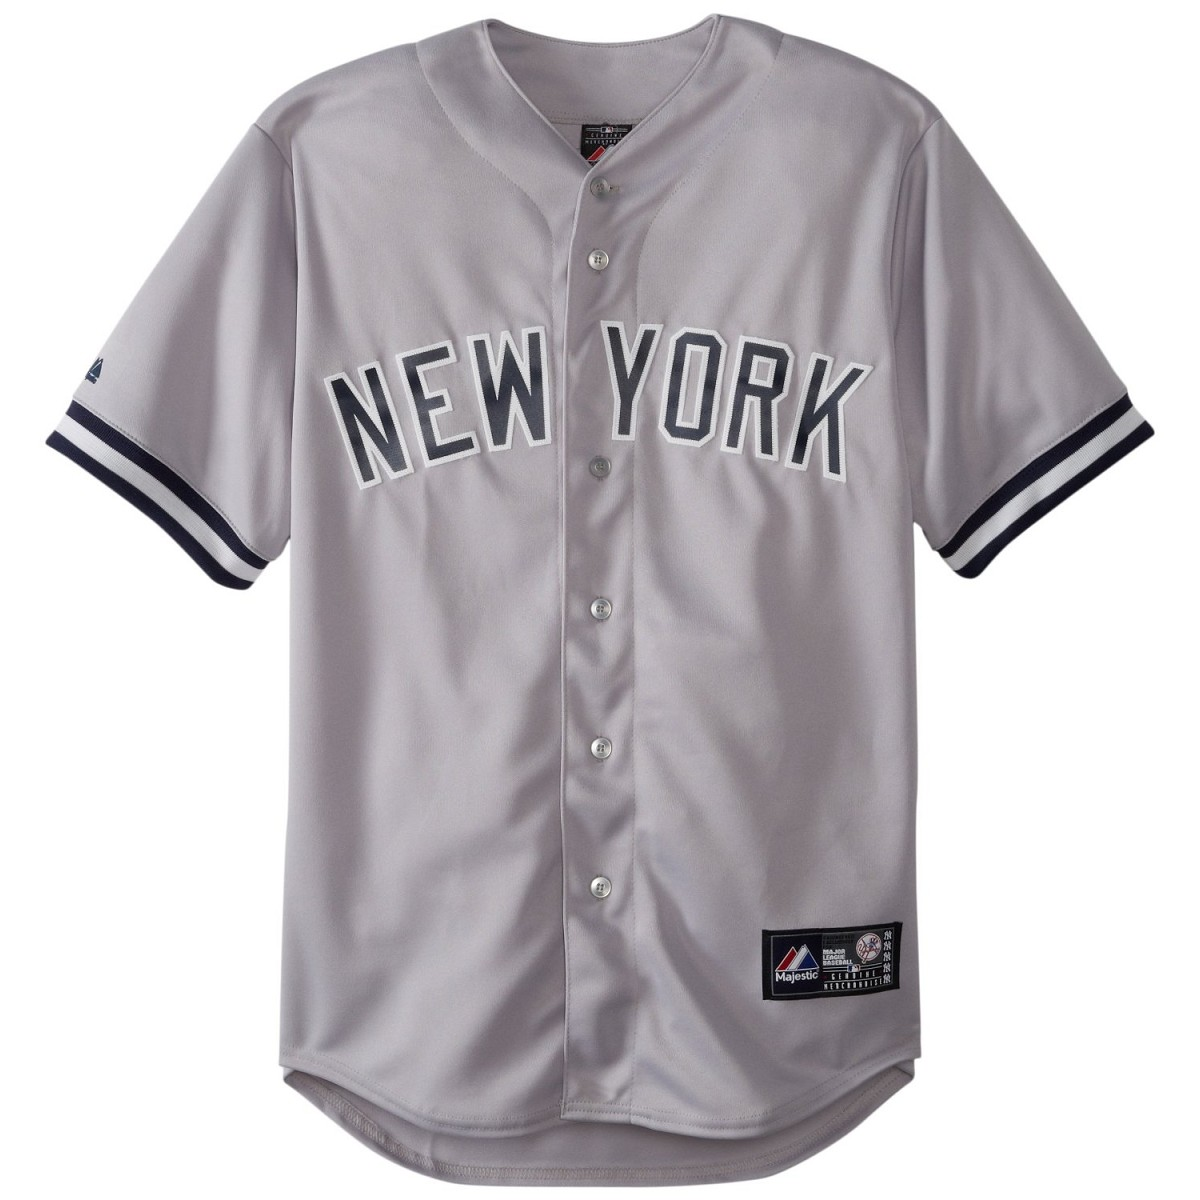 Jersey Mlb Majestic Replica New York Yankees Away Replica